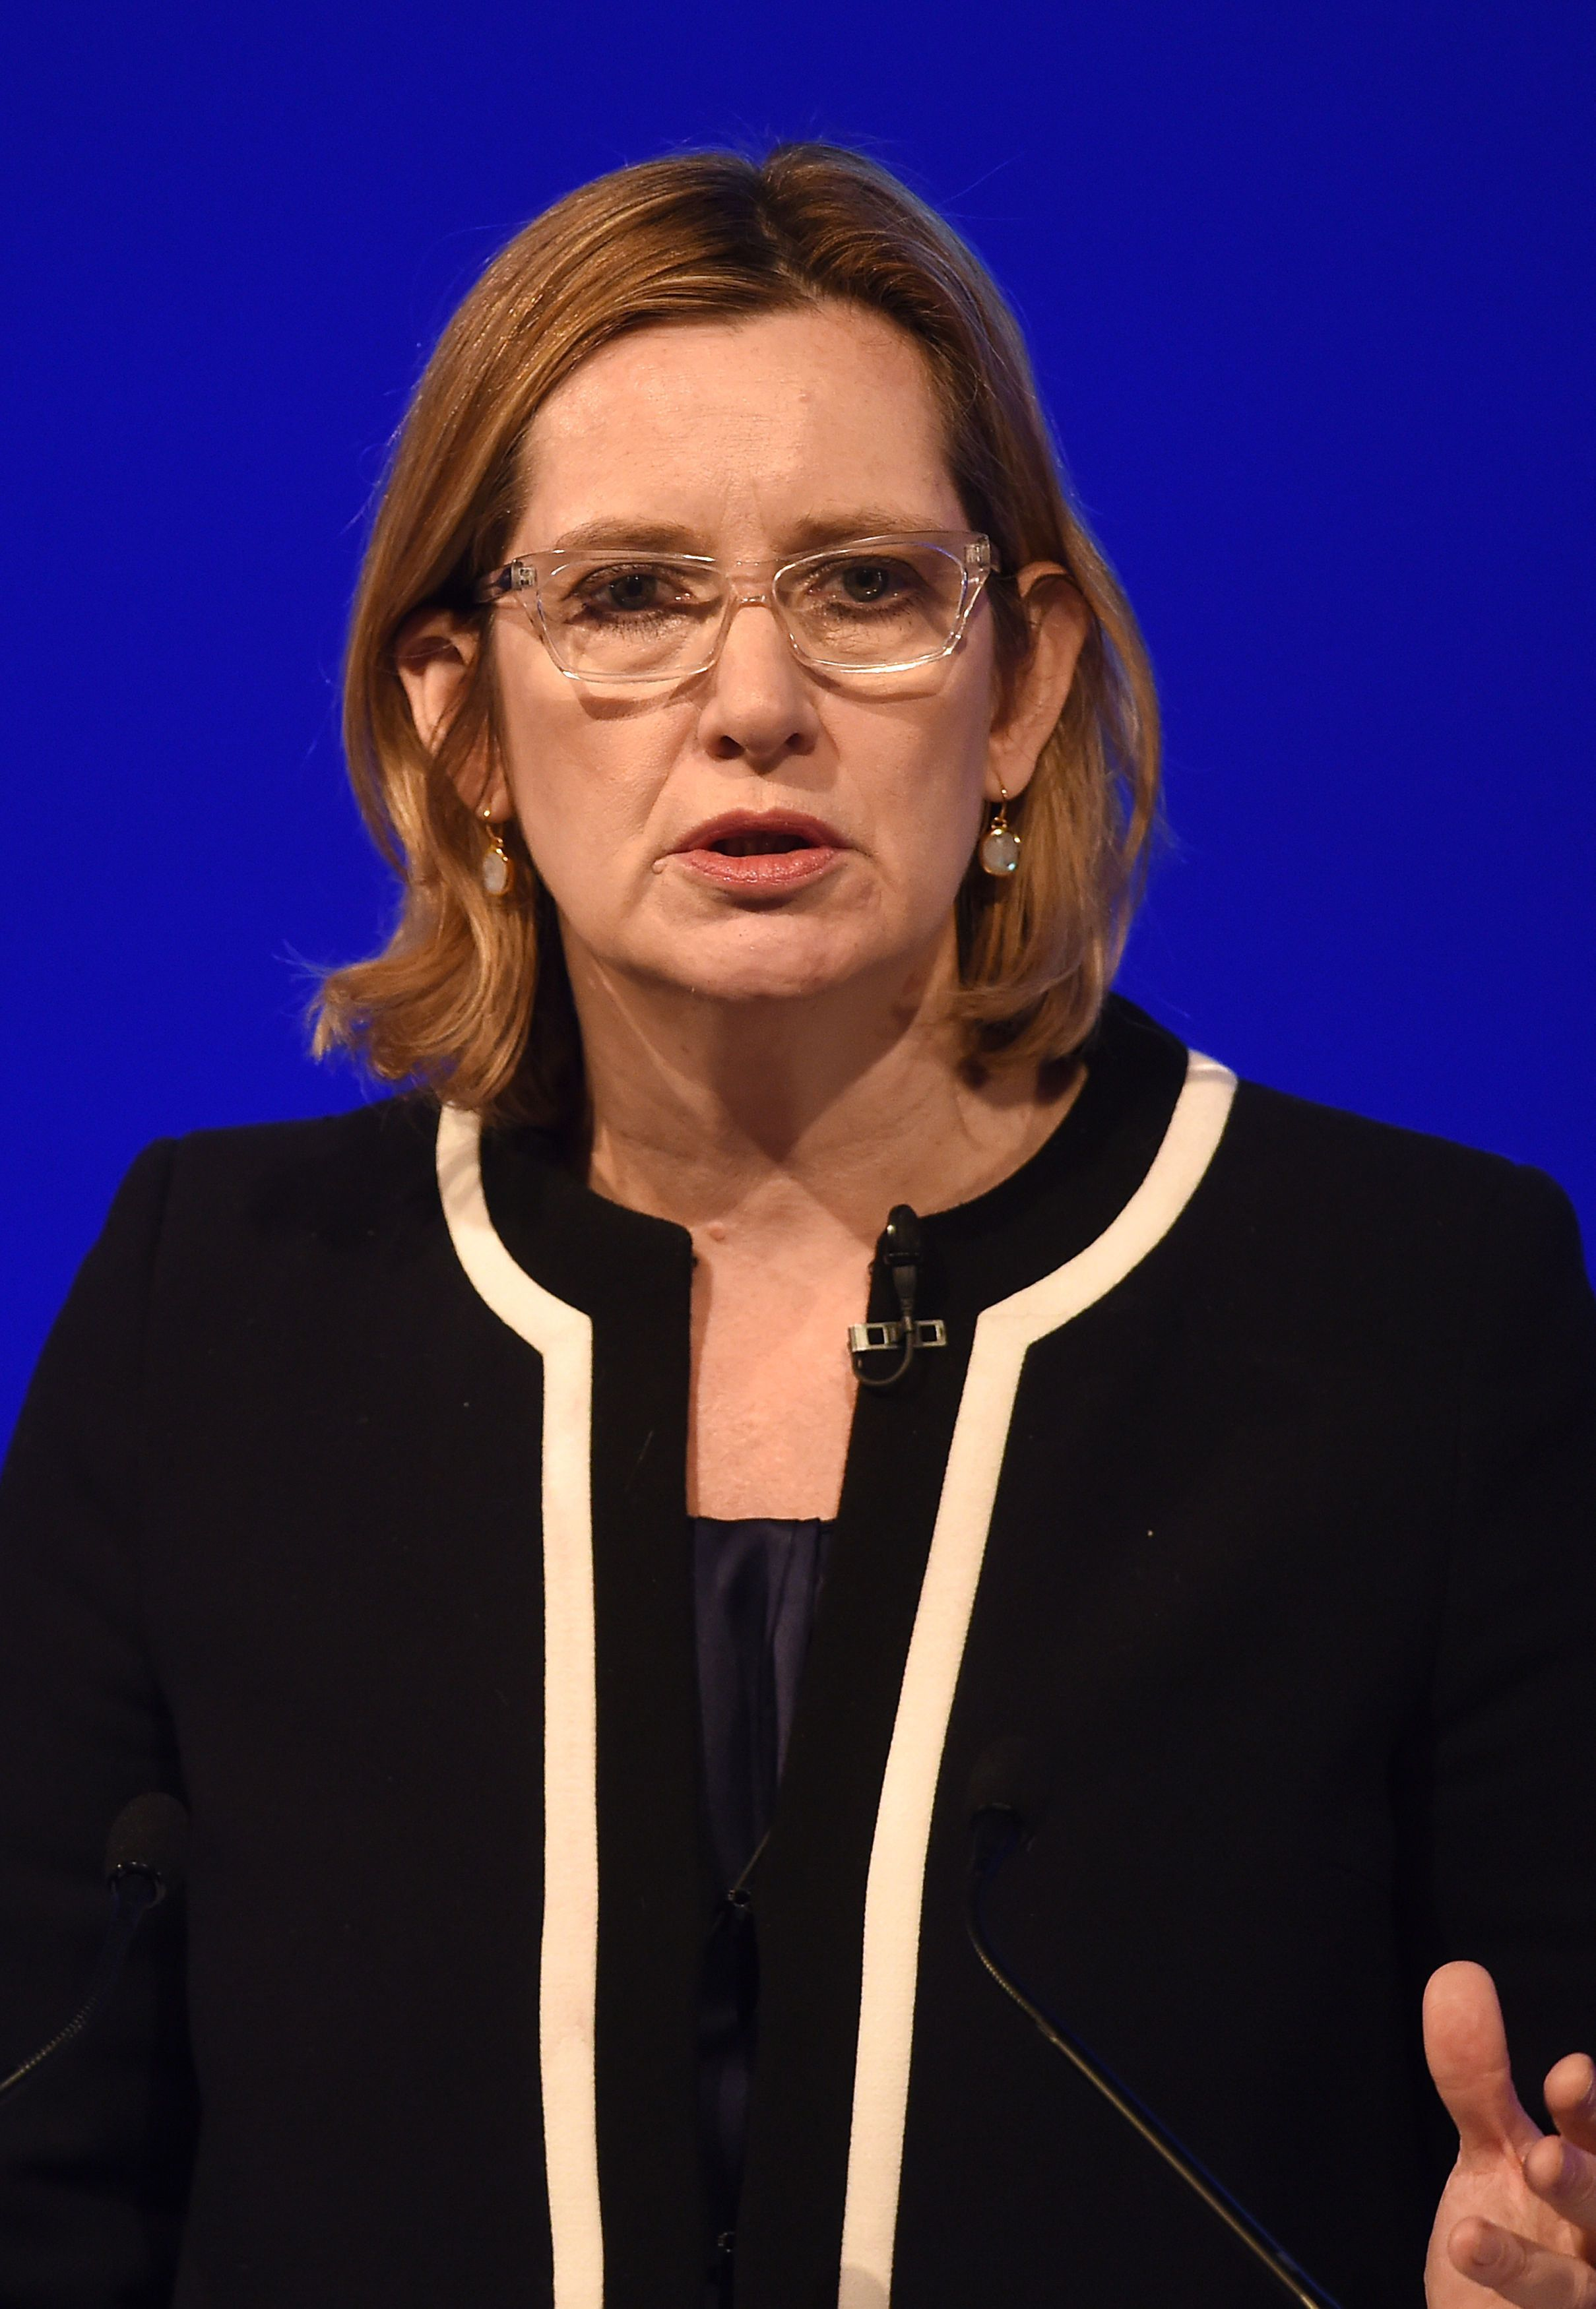 Amber Rudd said political correctness must not stop police tackling child sex